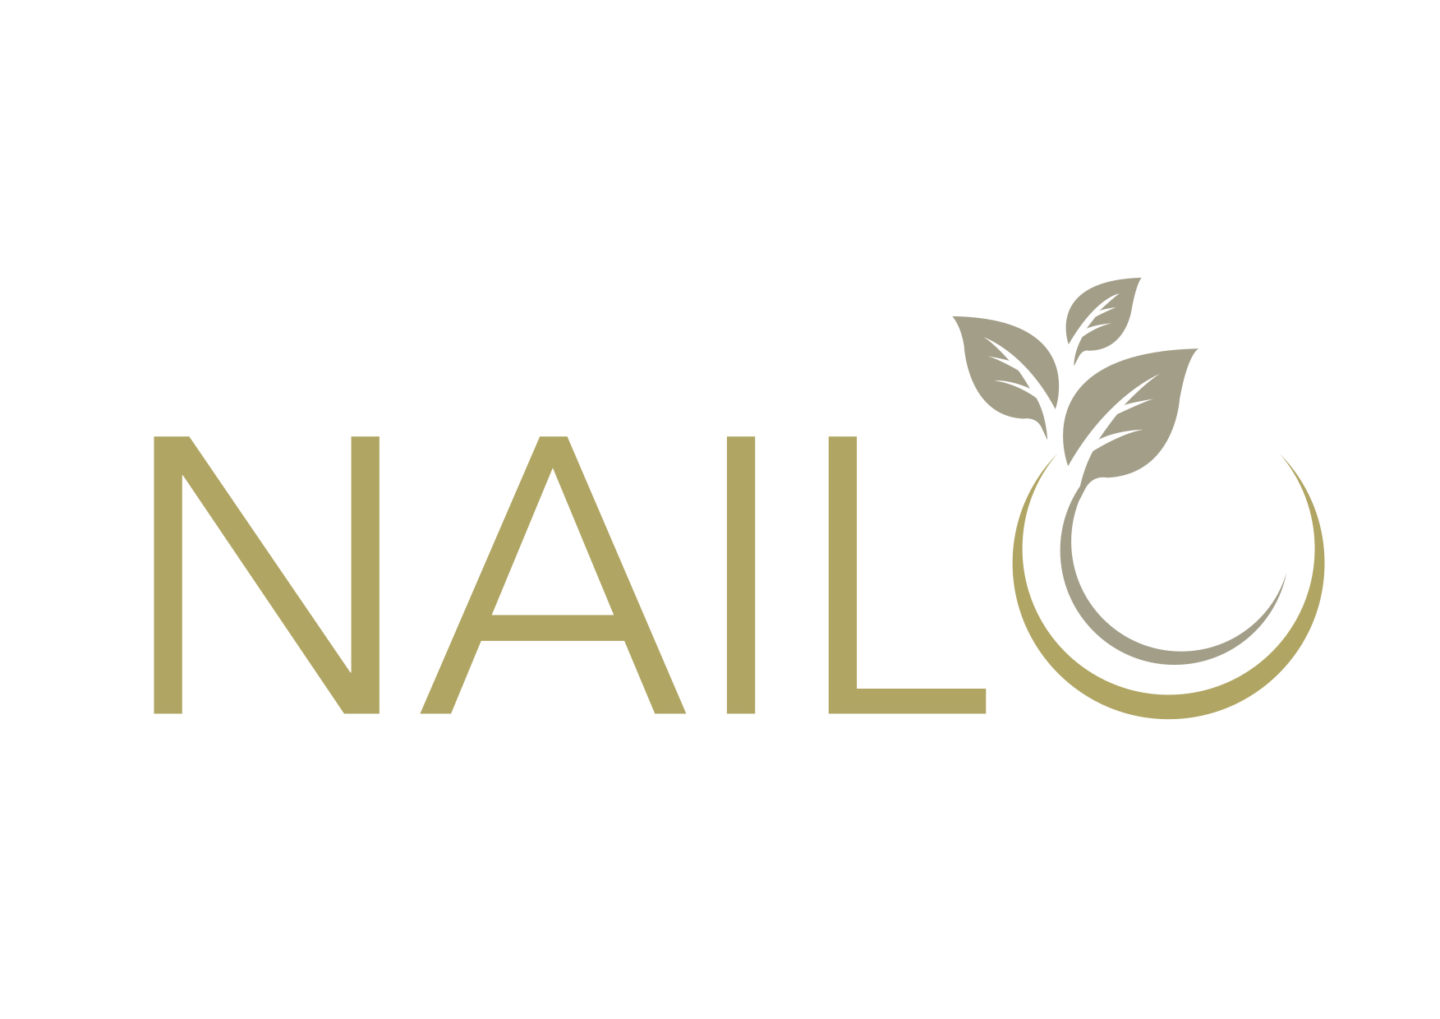 NAILO Coupons and Promo Code